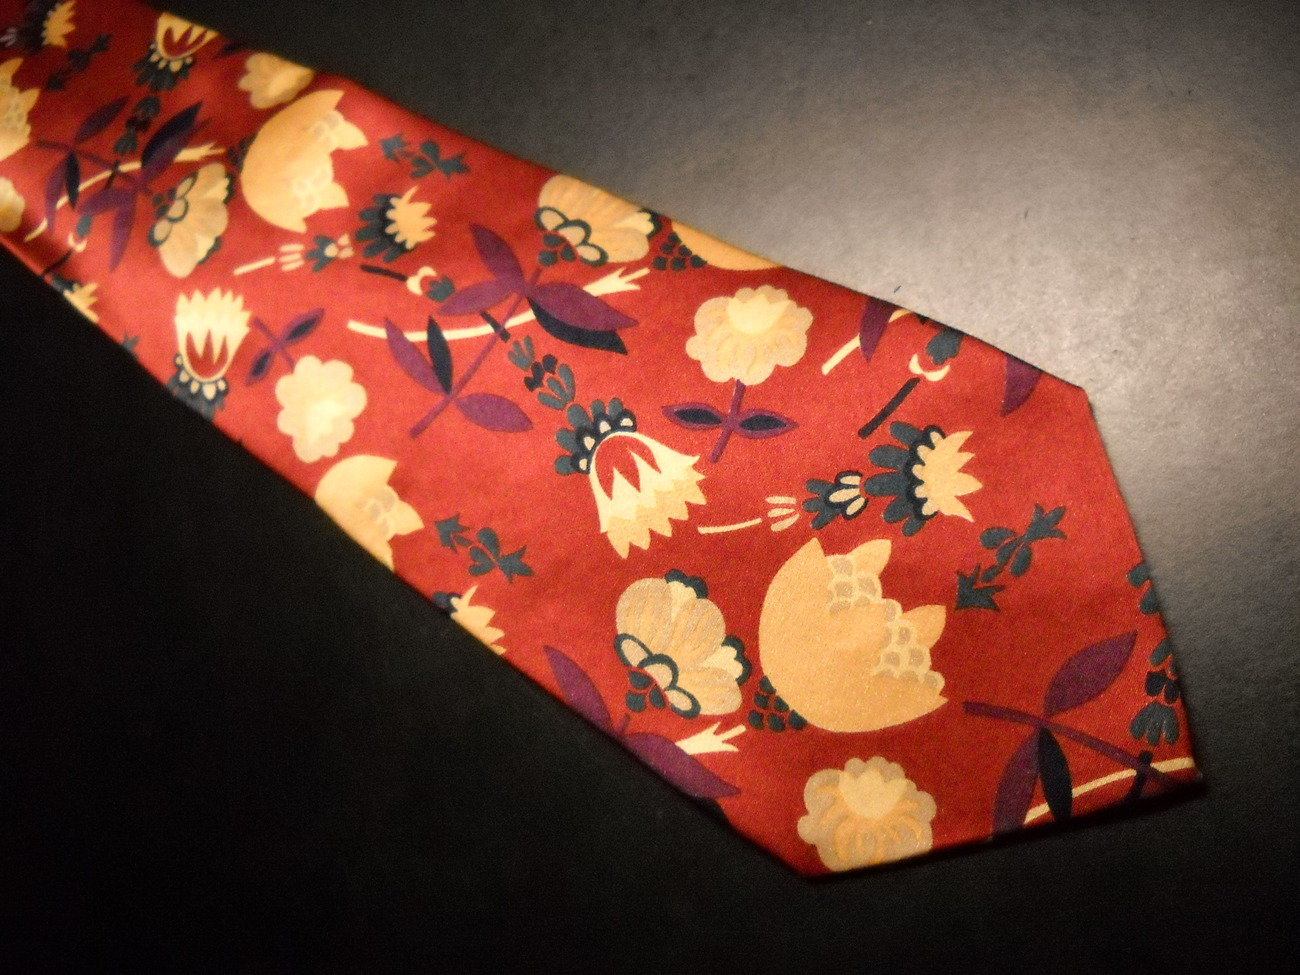 AKM Neck Tie Hand Made in Italy Silk Rusty Reds and Gold Flowers image 2